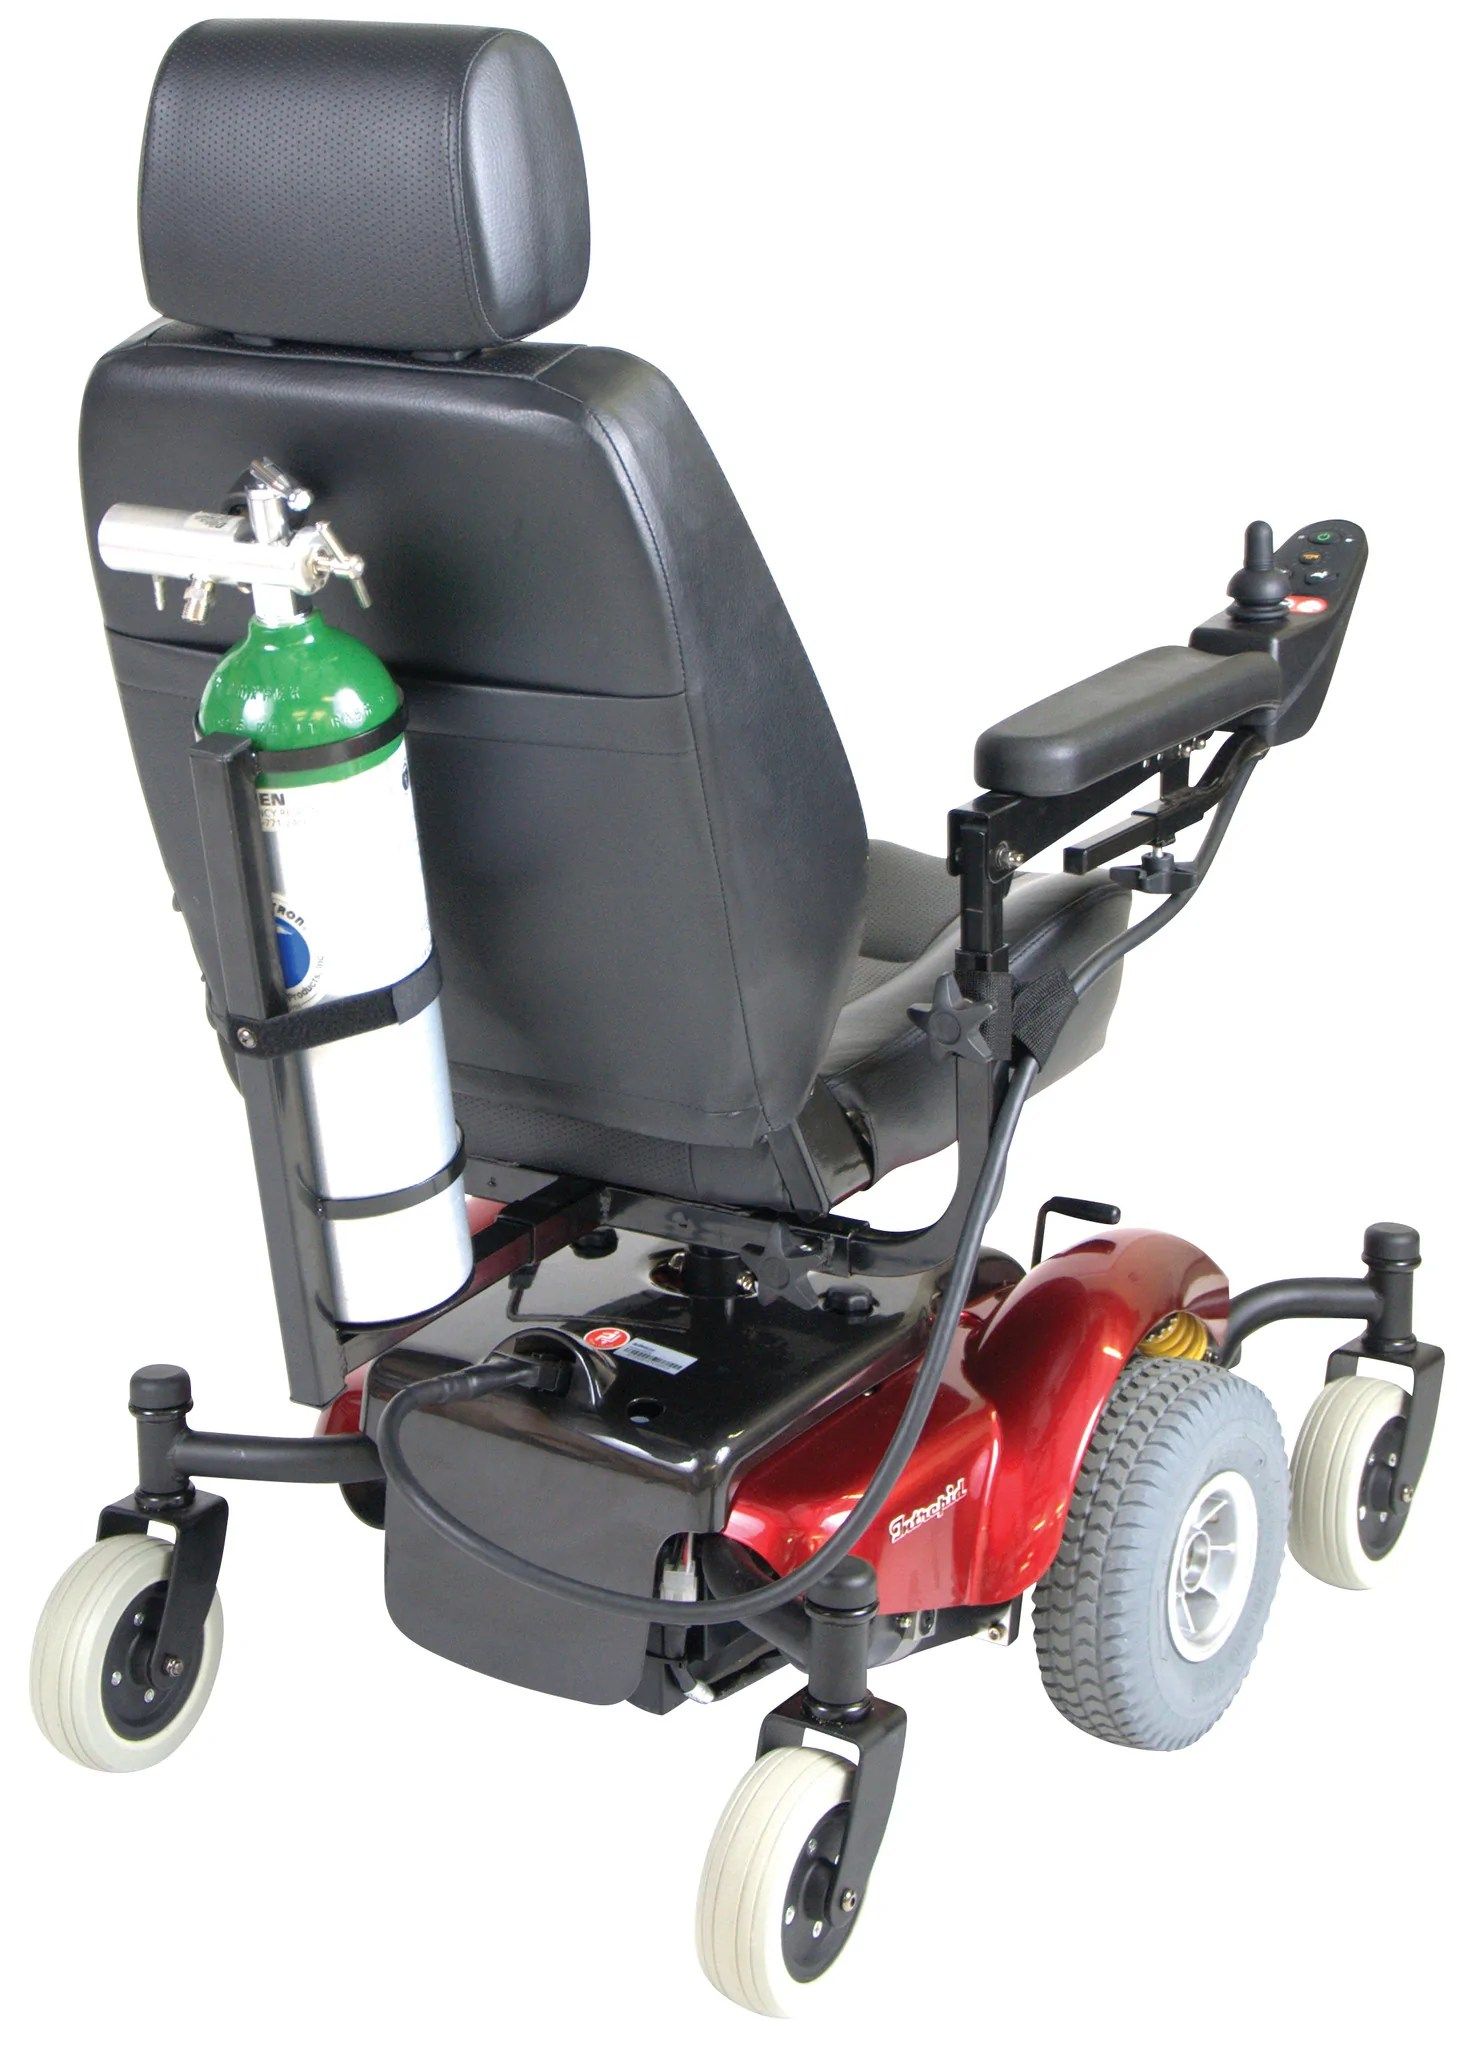 power chair accessories plus size outdoor rocking chairs mobility oxygen cylinder tank carrier csa medical